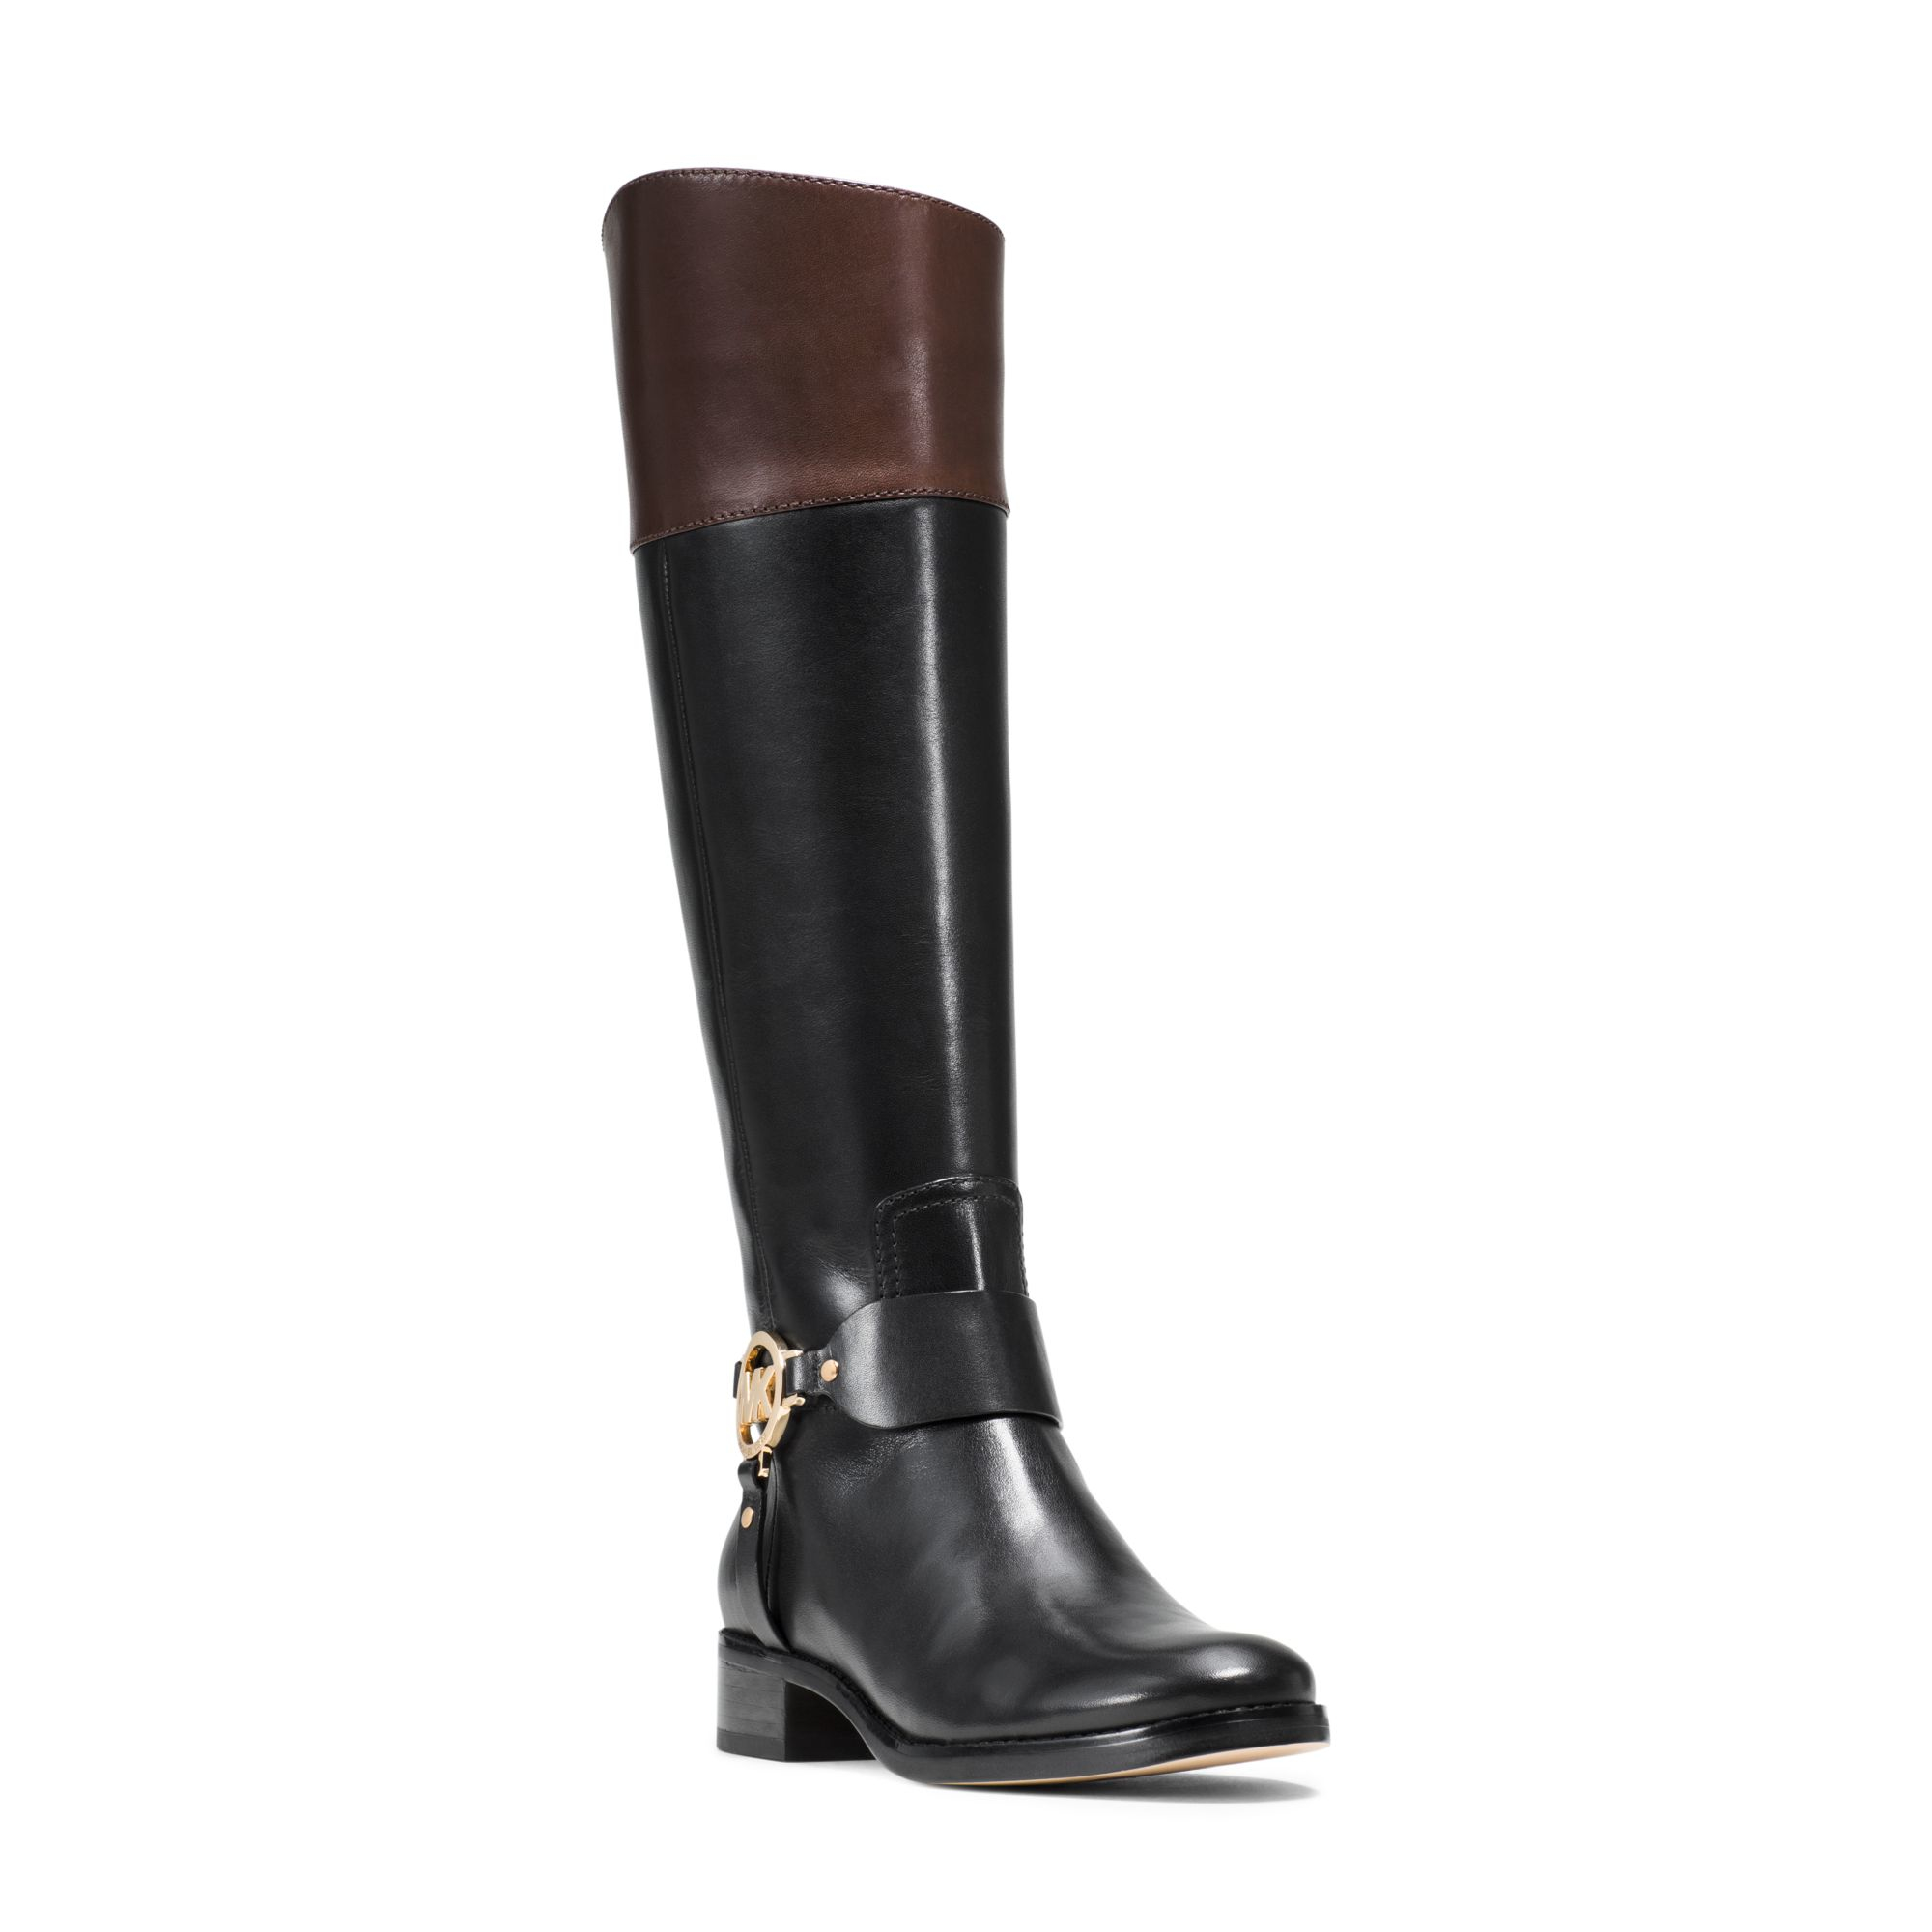 Lyst - Michael Kors Fulton Leather Riding Boot in Black